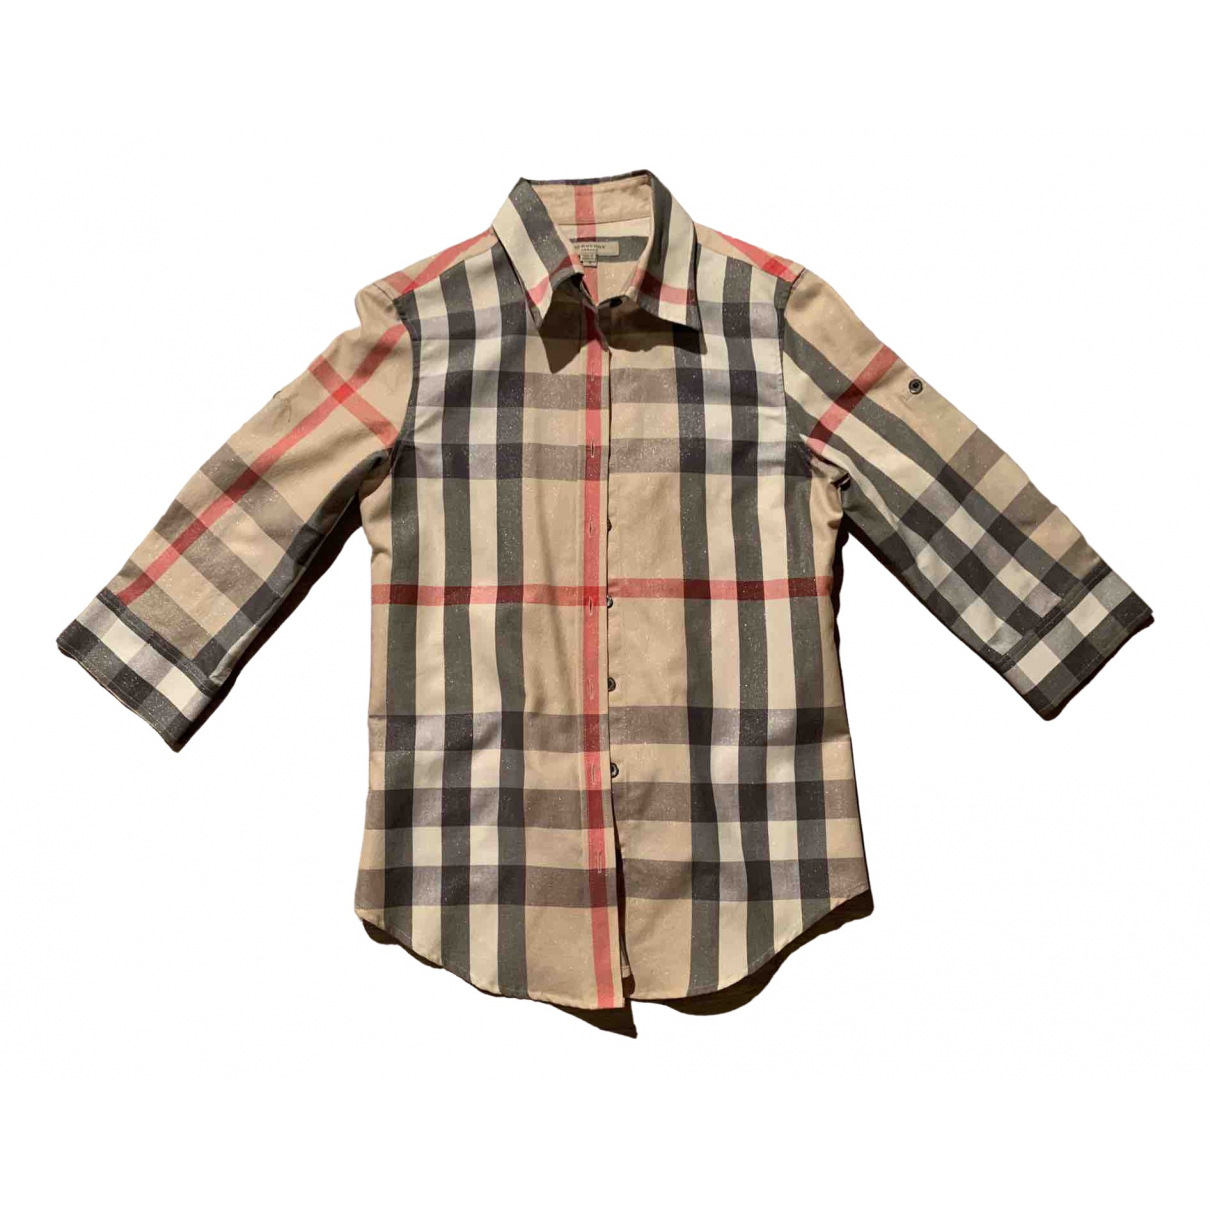 Burberry \N Cotton  top for Women S International